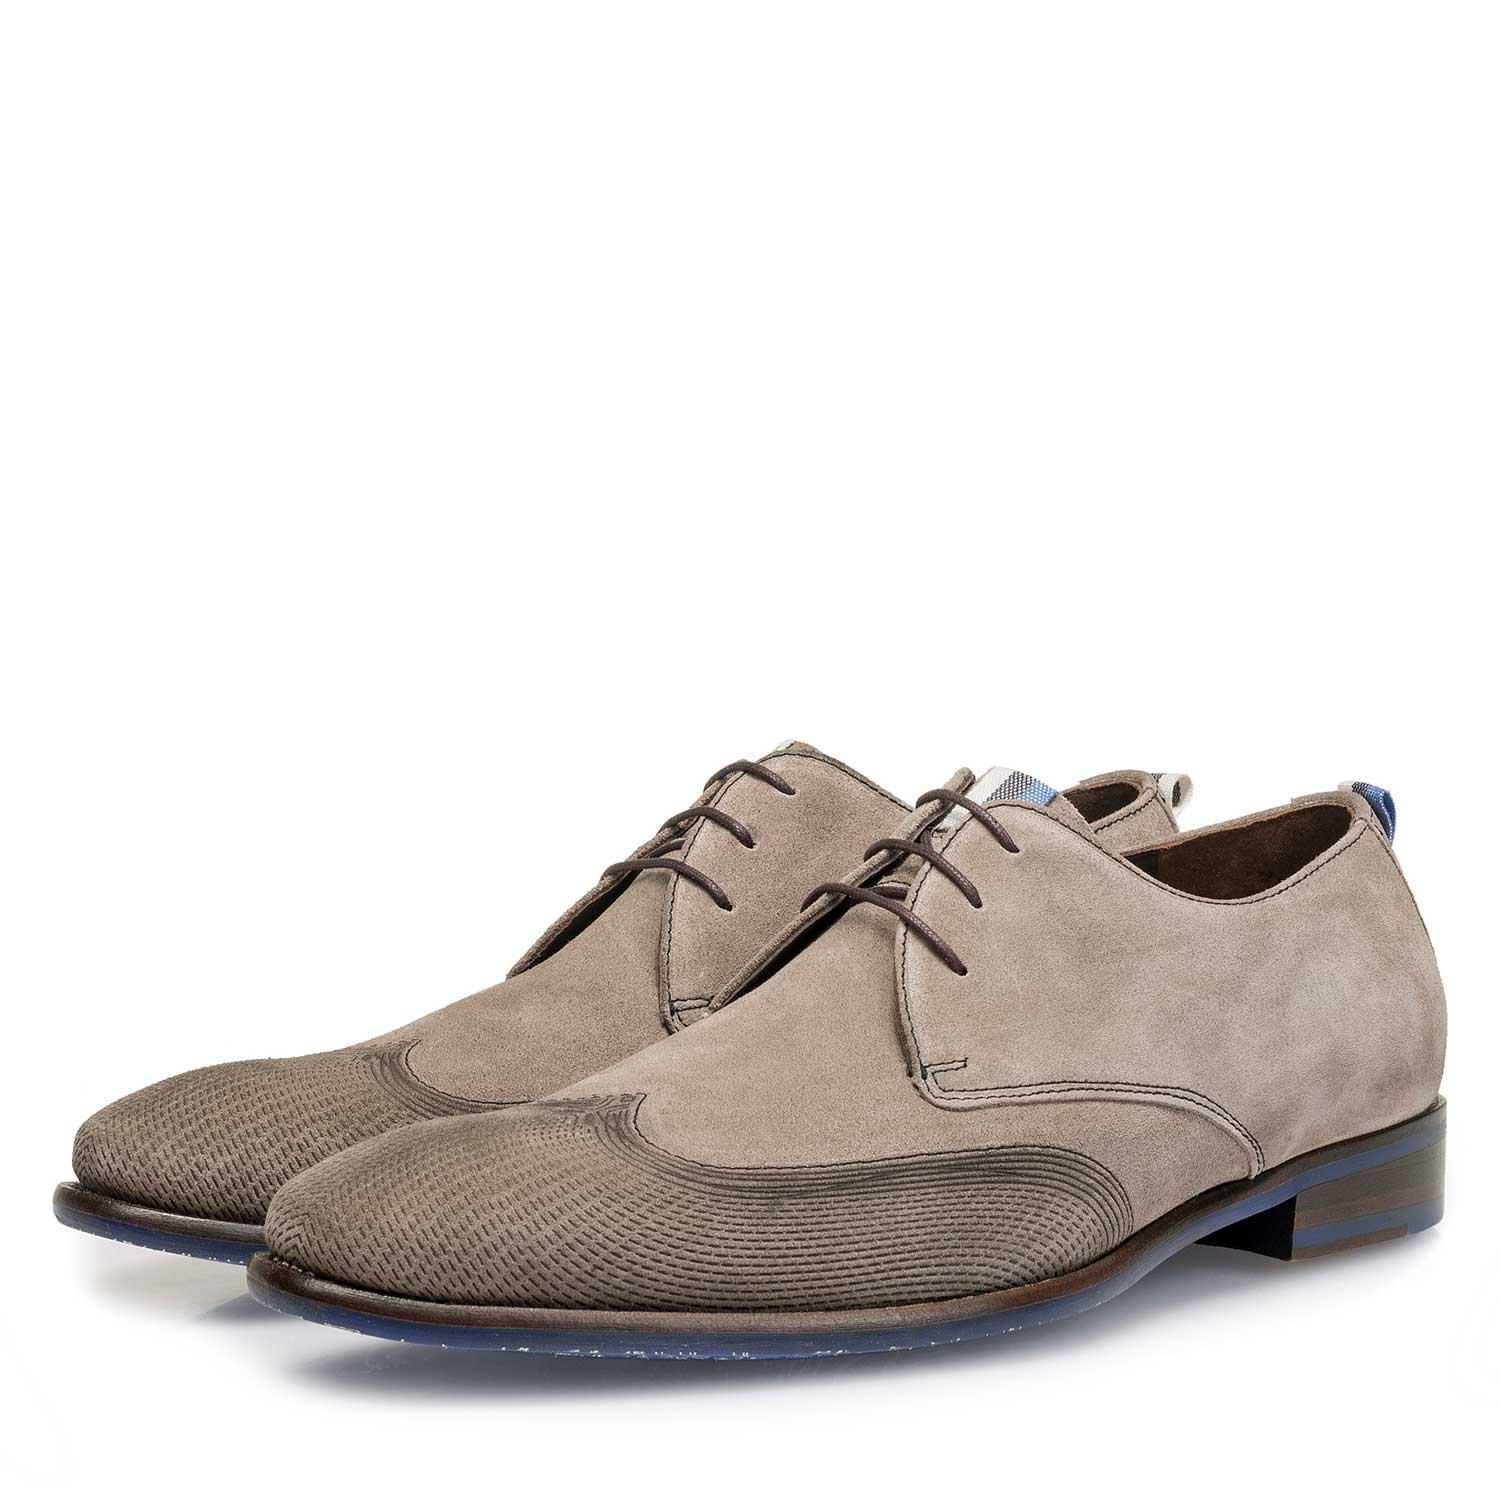 18082/05 - Taupe-coloured calf suede leather lace shoe with a laser-cut pattern